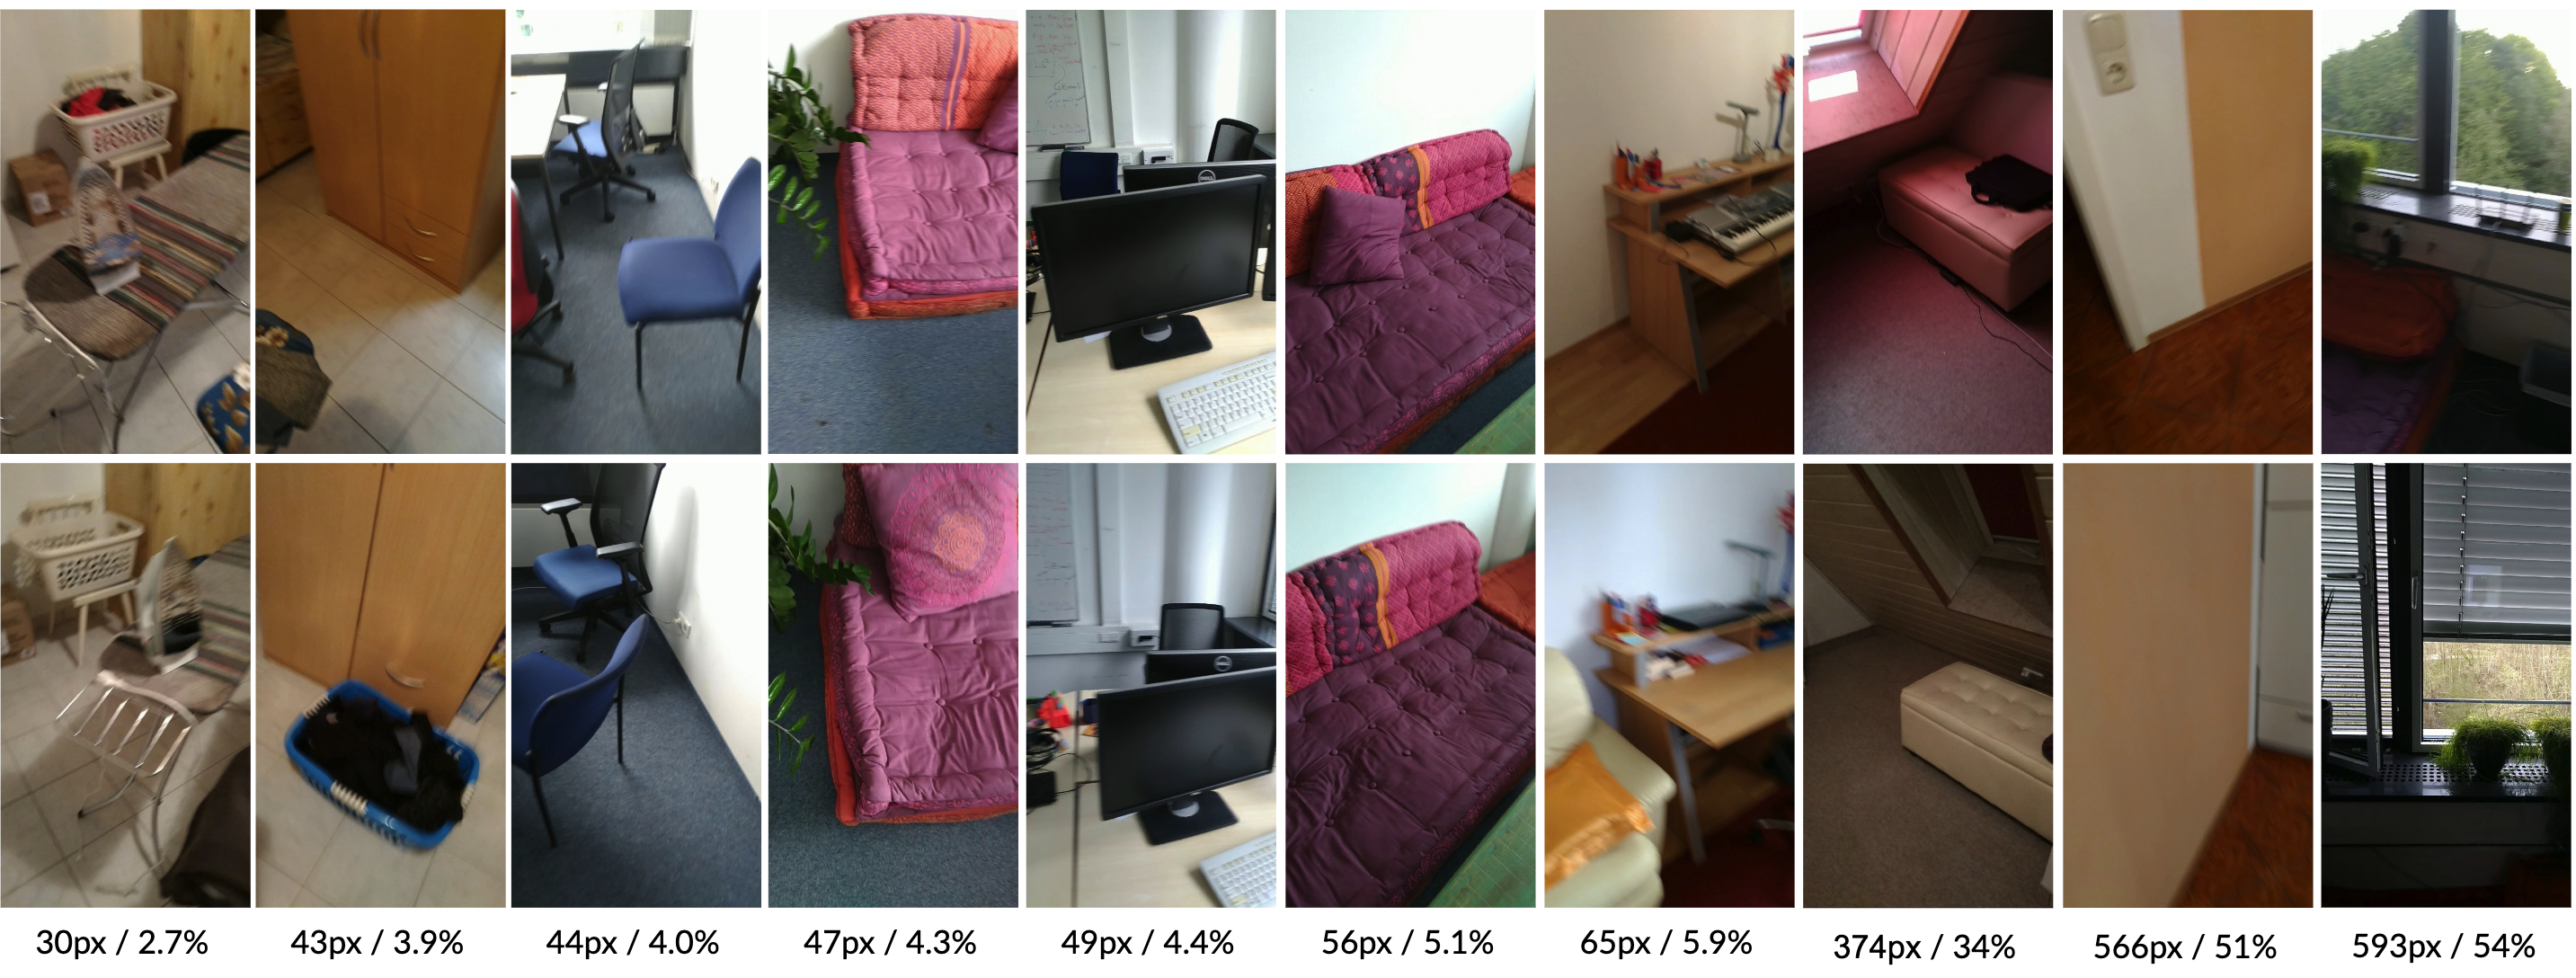 Visualizing our pose novelty metric. Top row: test images; bottom row: nearest neighbour training images, as computed by using our novel DCRE measure as a pose similarity metric. The DCRE (in pixels), which is used to capture the pose novelty between each pair of images, is printed below them, as is the percentage of the image diagonal it represents in each case.